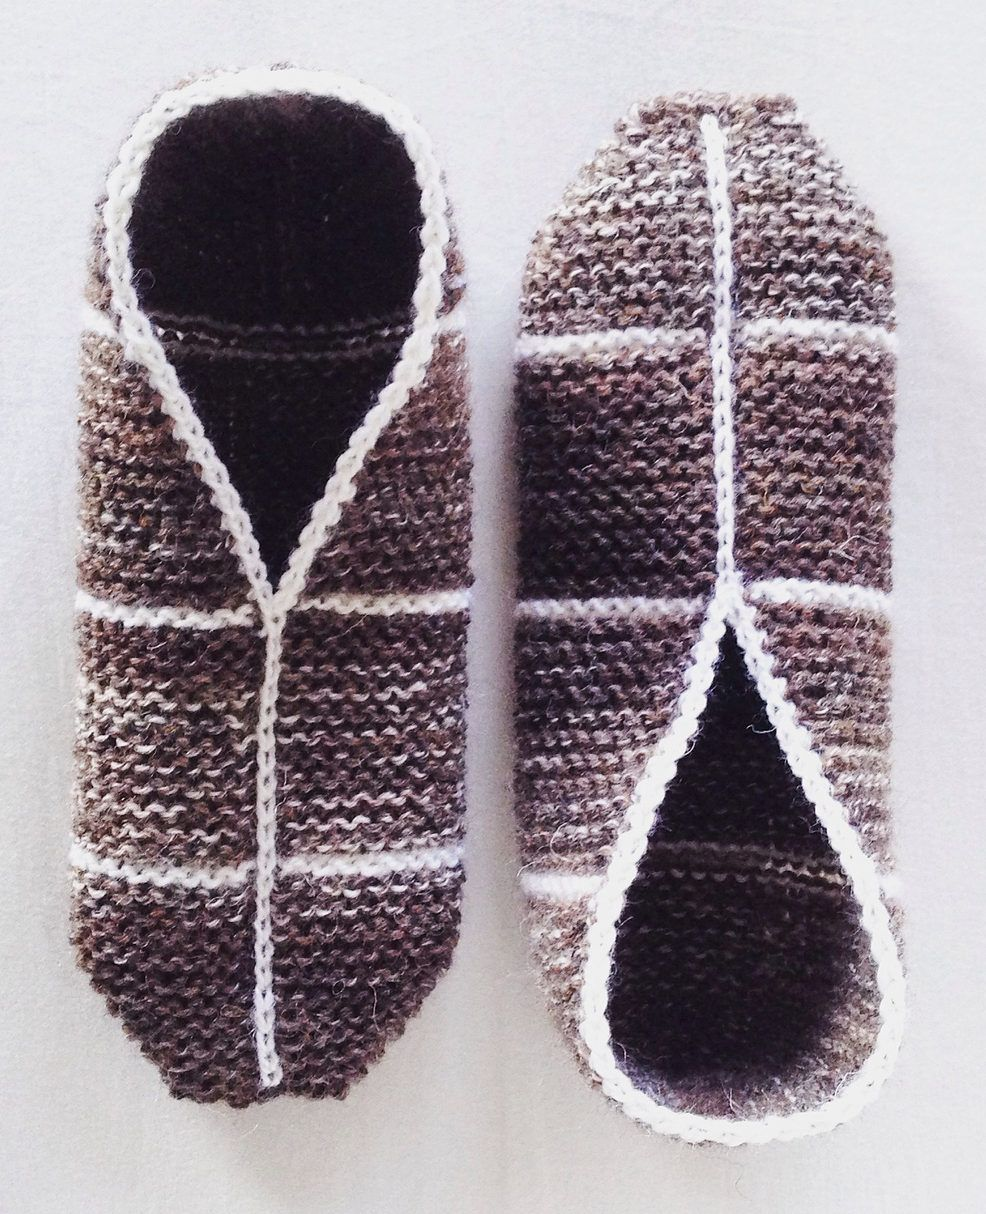 d4791bfff07c Free Knitting Pattern for Simple Garter Stitch Slippers - Hanna ...